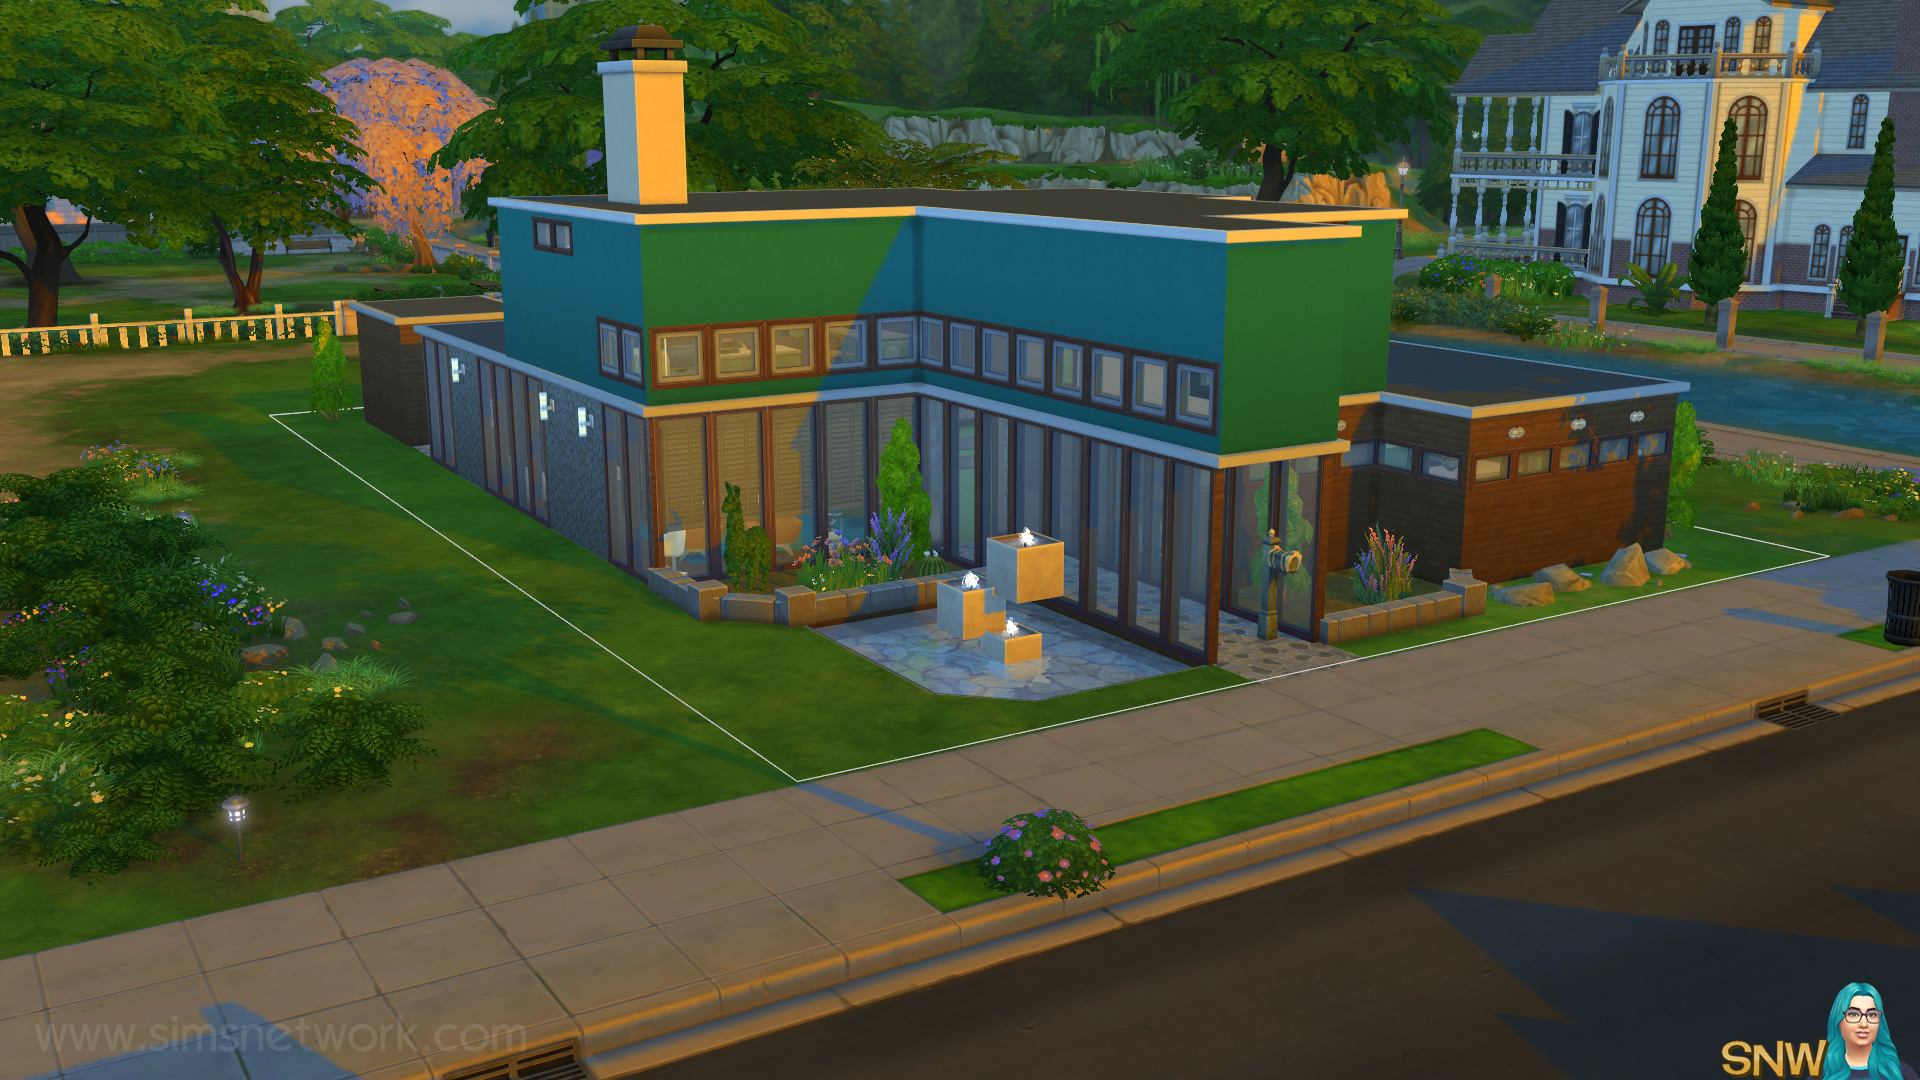 Mid Century Modern House in The Sims 4 SNW